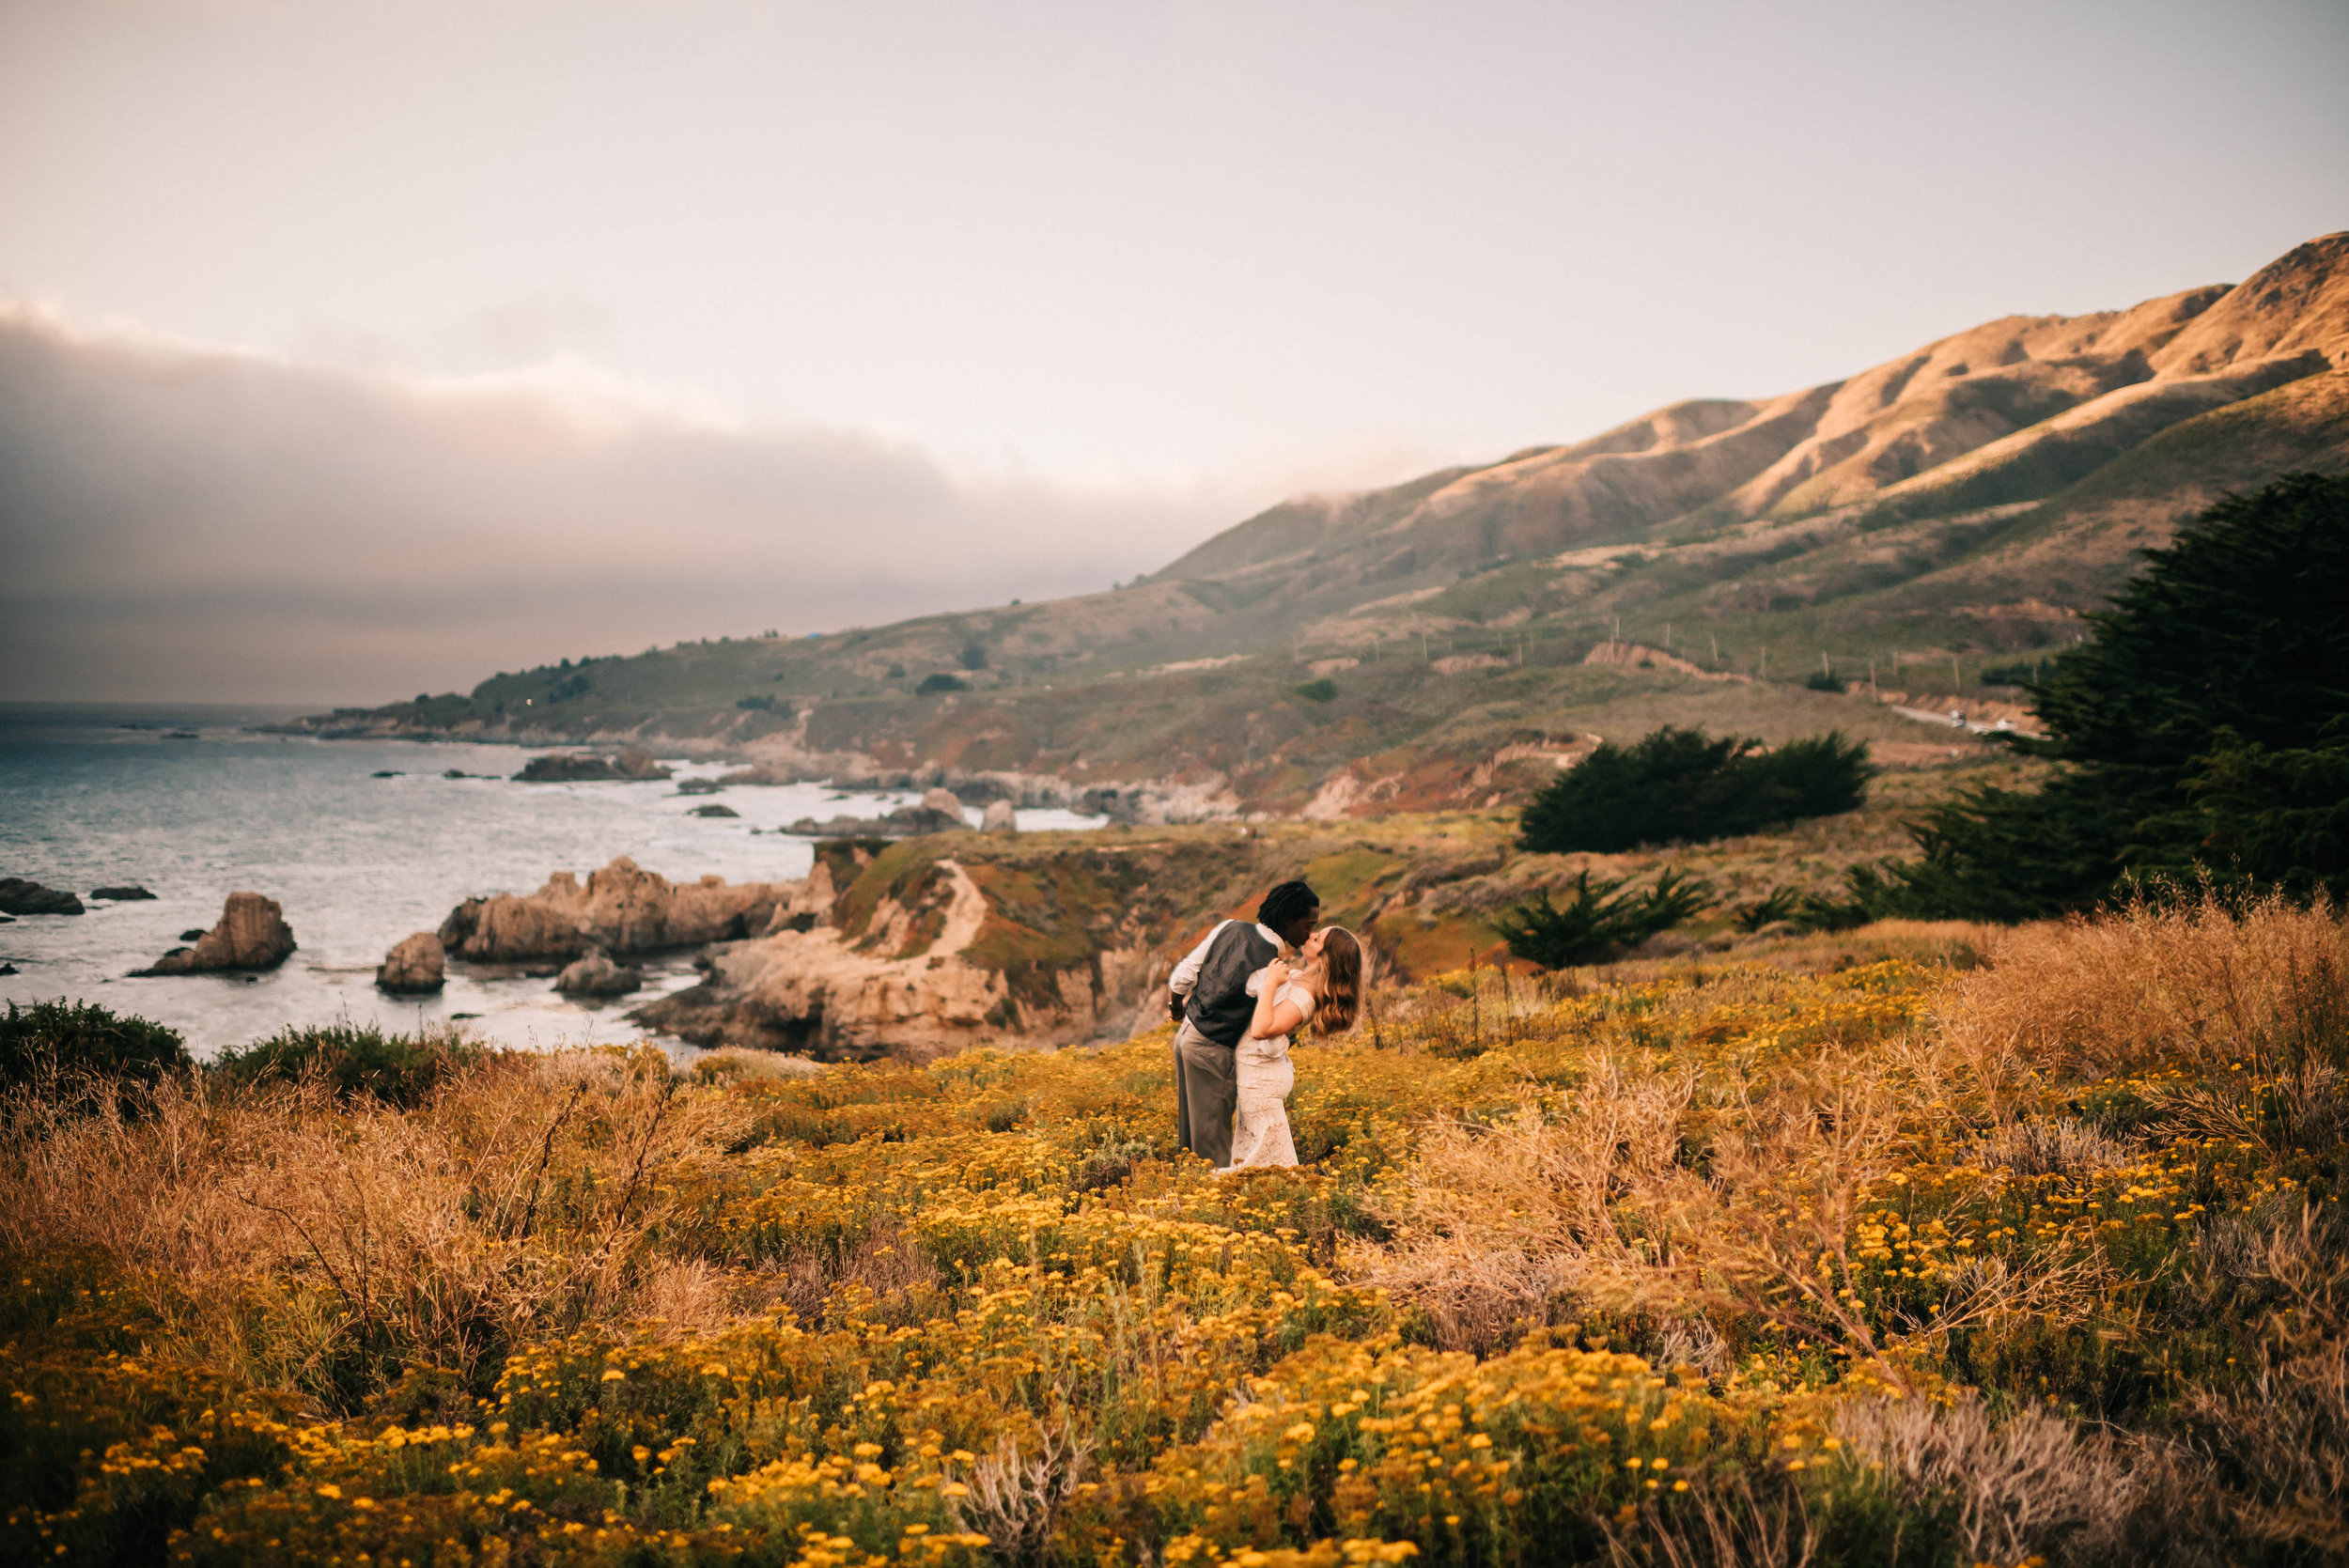 atlanta georgia big sur san francisco california bay area sf oakland wedding portrait adventure engageement nontraditional tattooed couple photographer-59.jpg